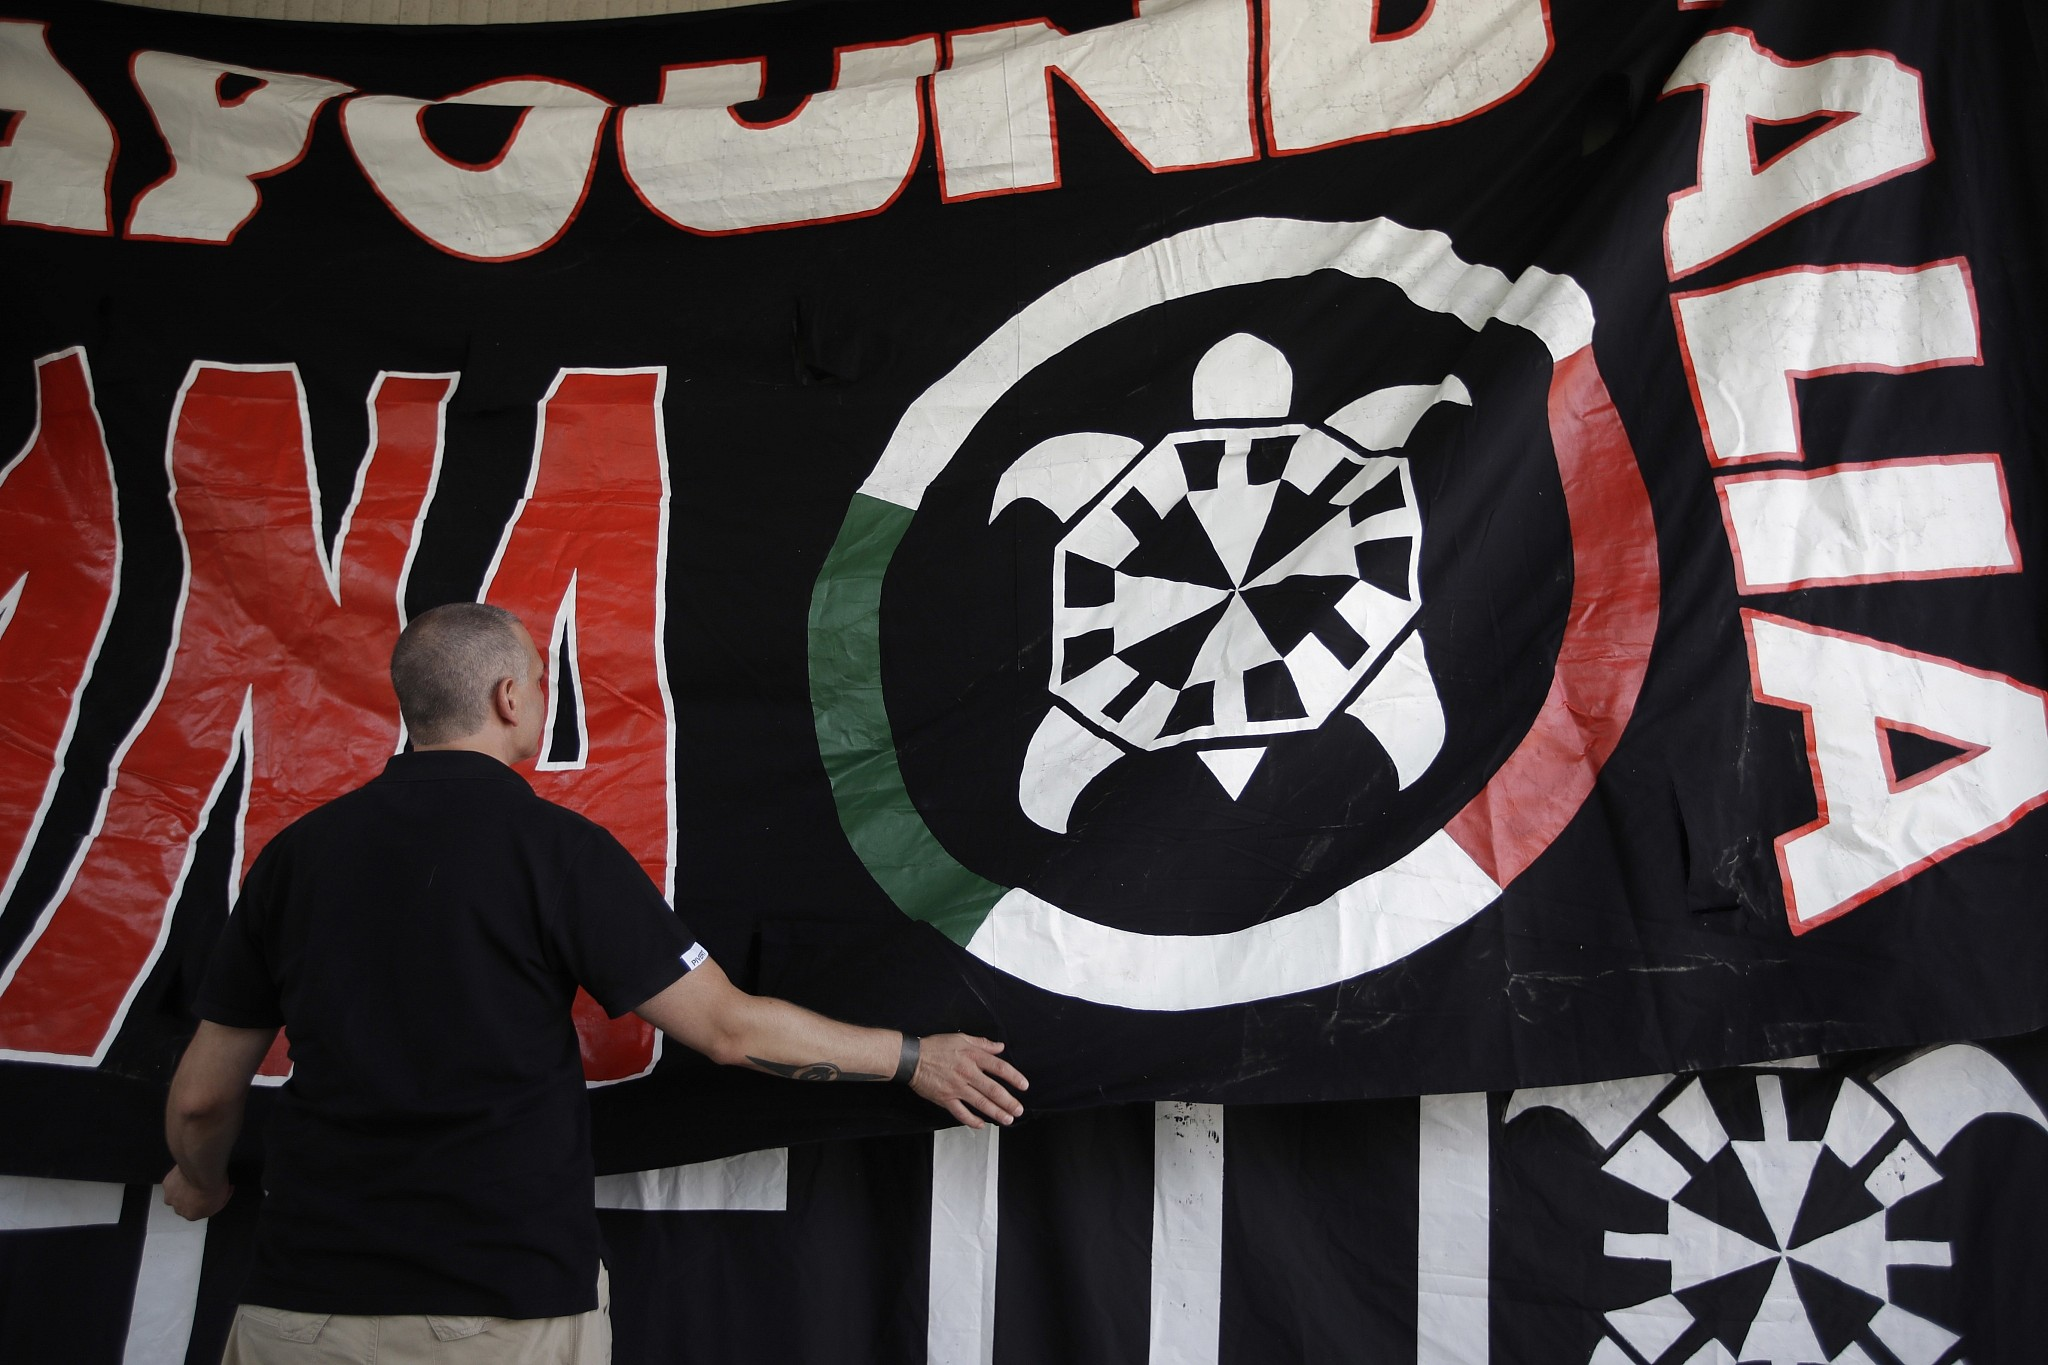 In Italy Neo Fascists Get A Boost From Anti Migrant Sentiment The